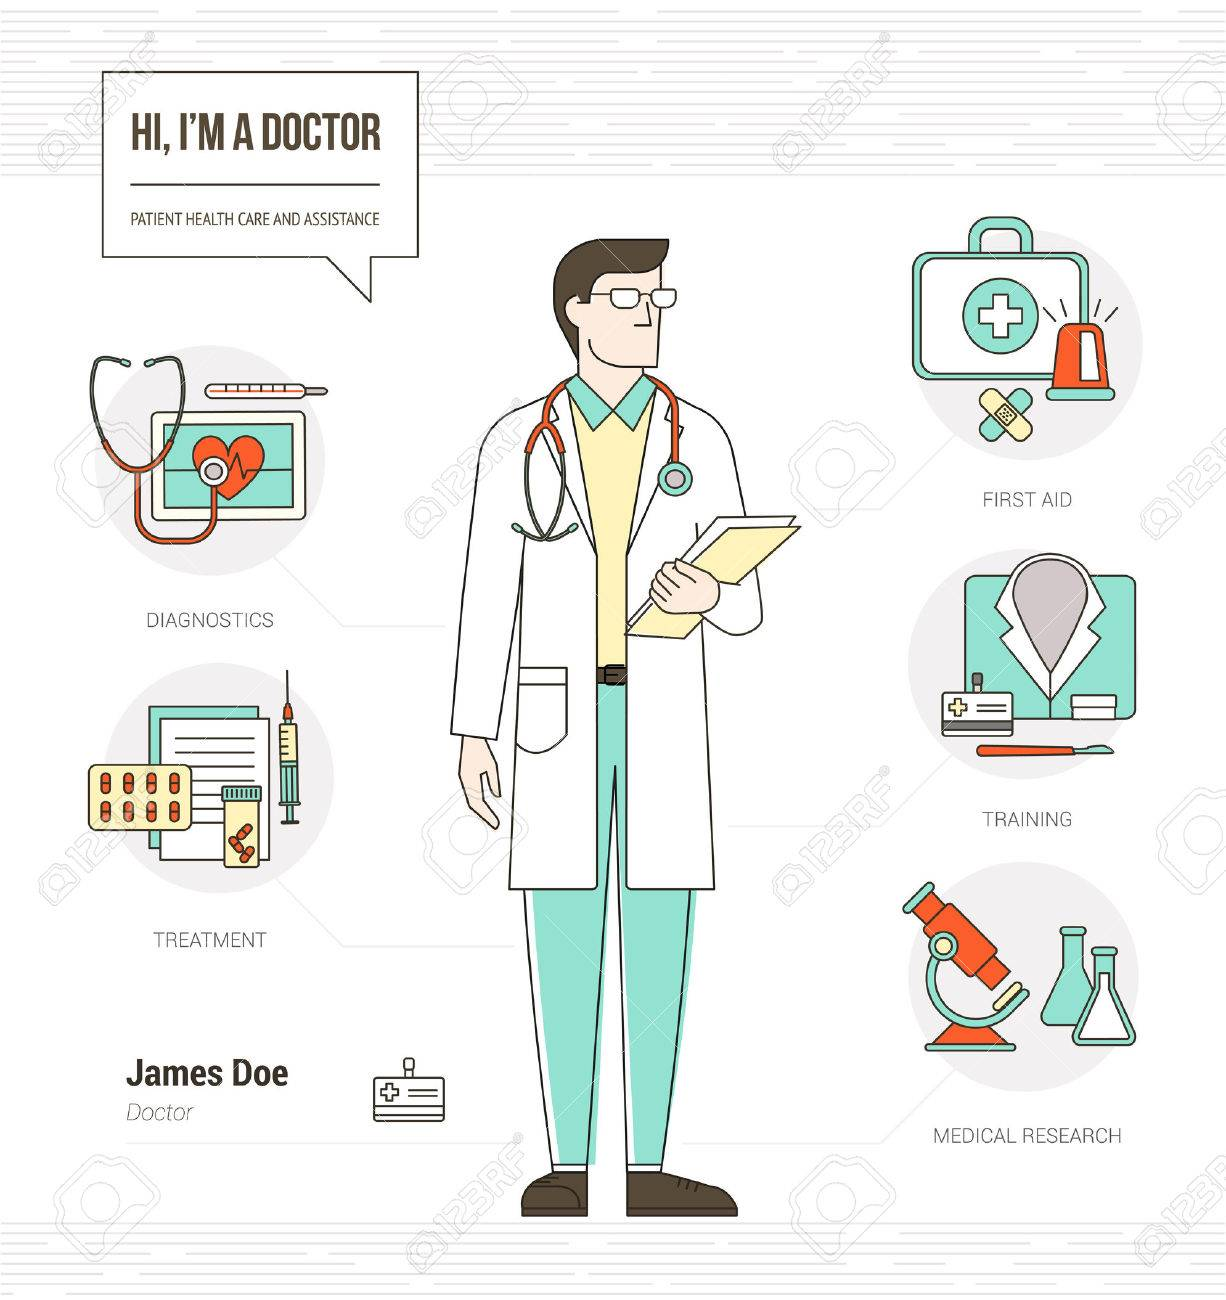 Professional Doctor Infographic Skills Resume With Tools, Medical ...